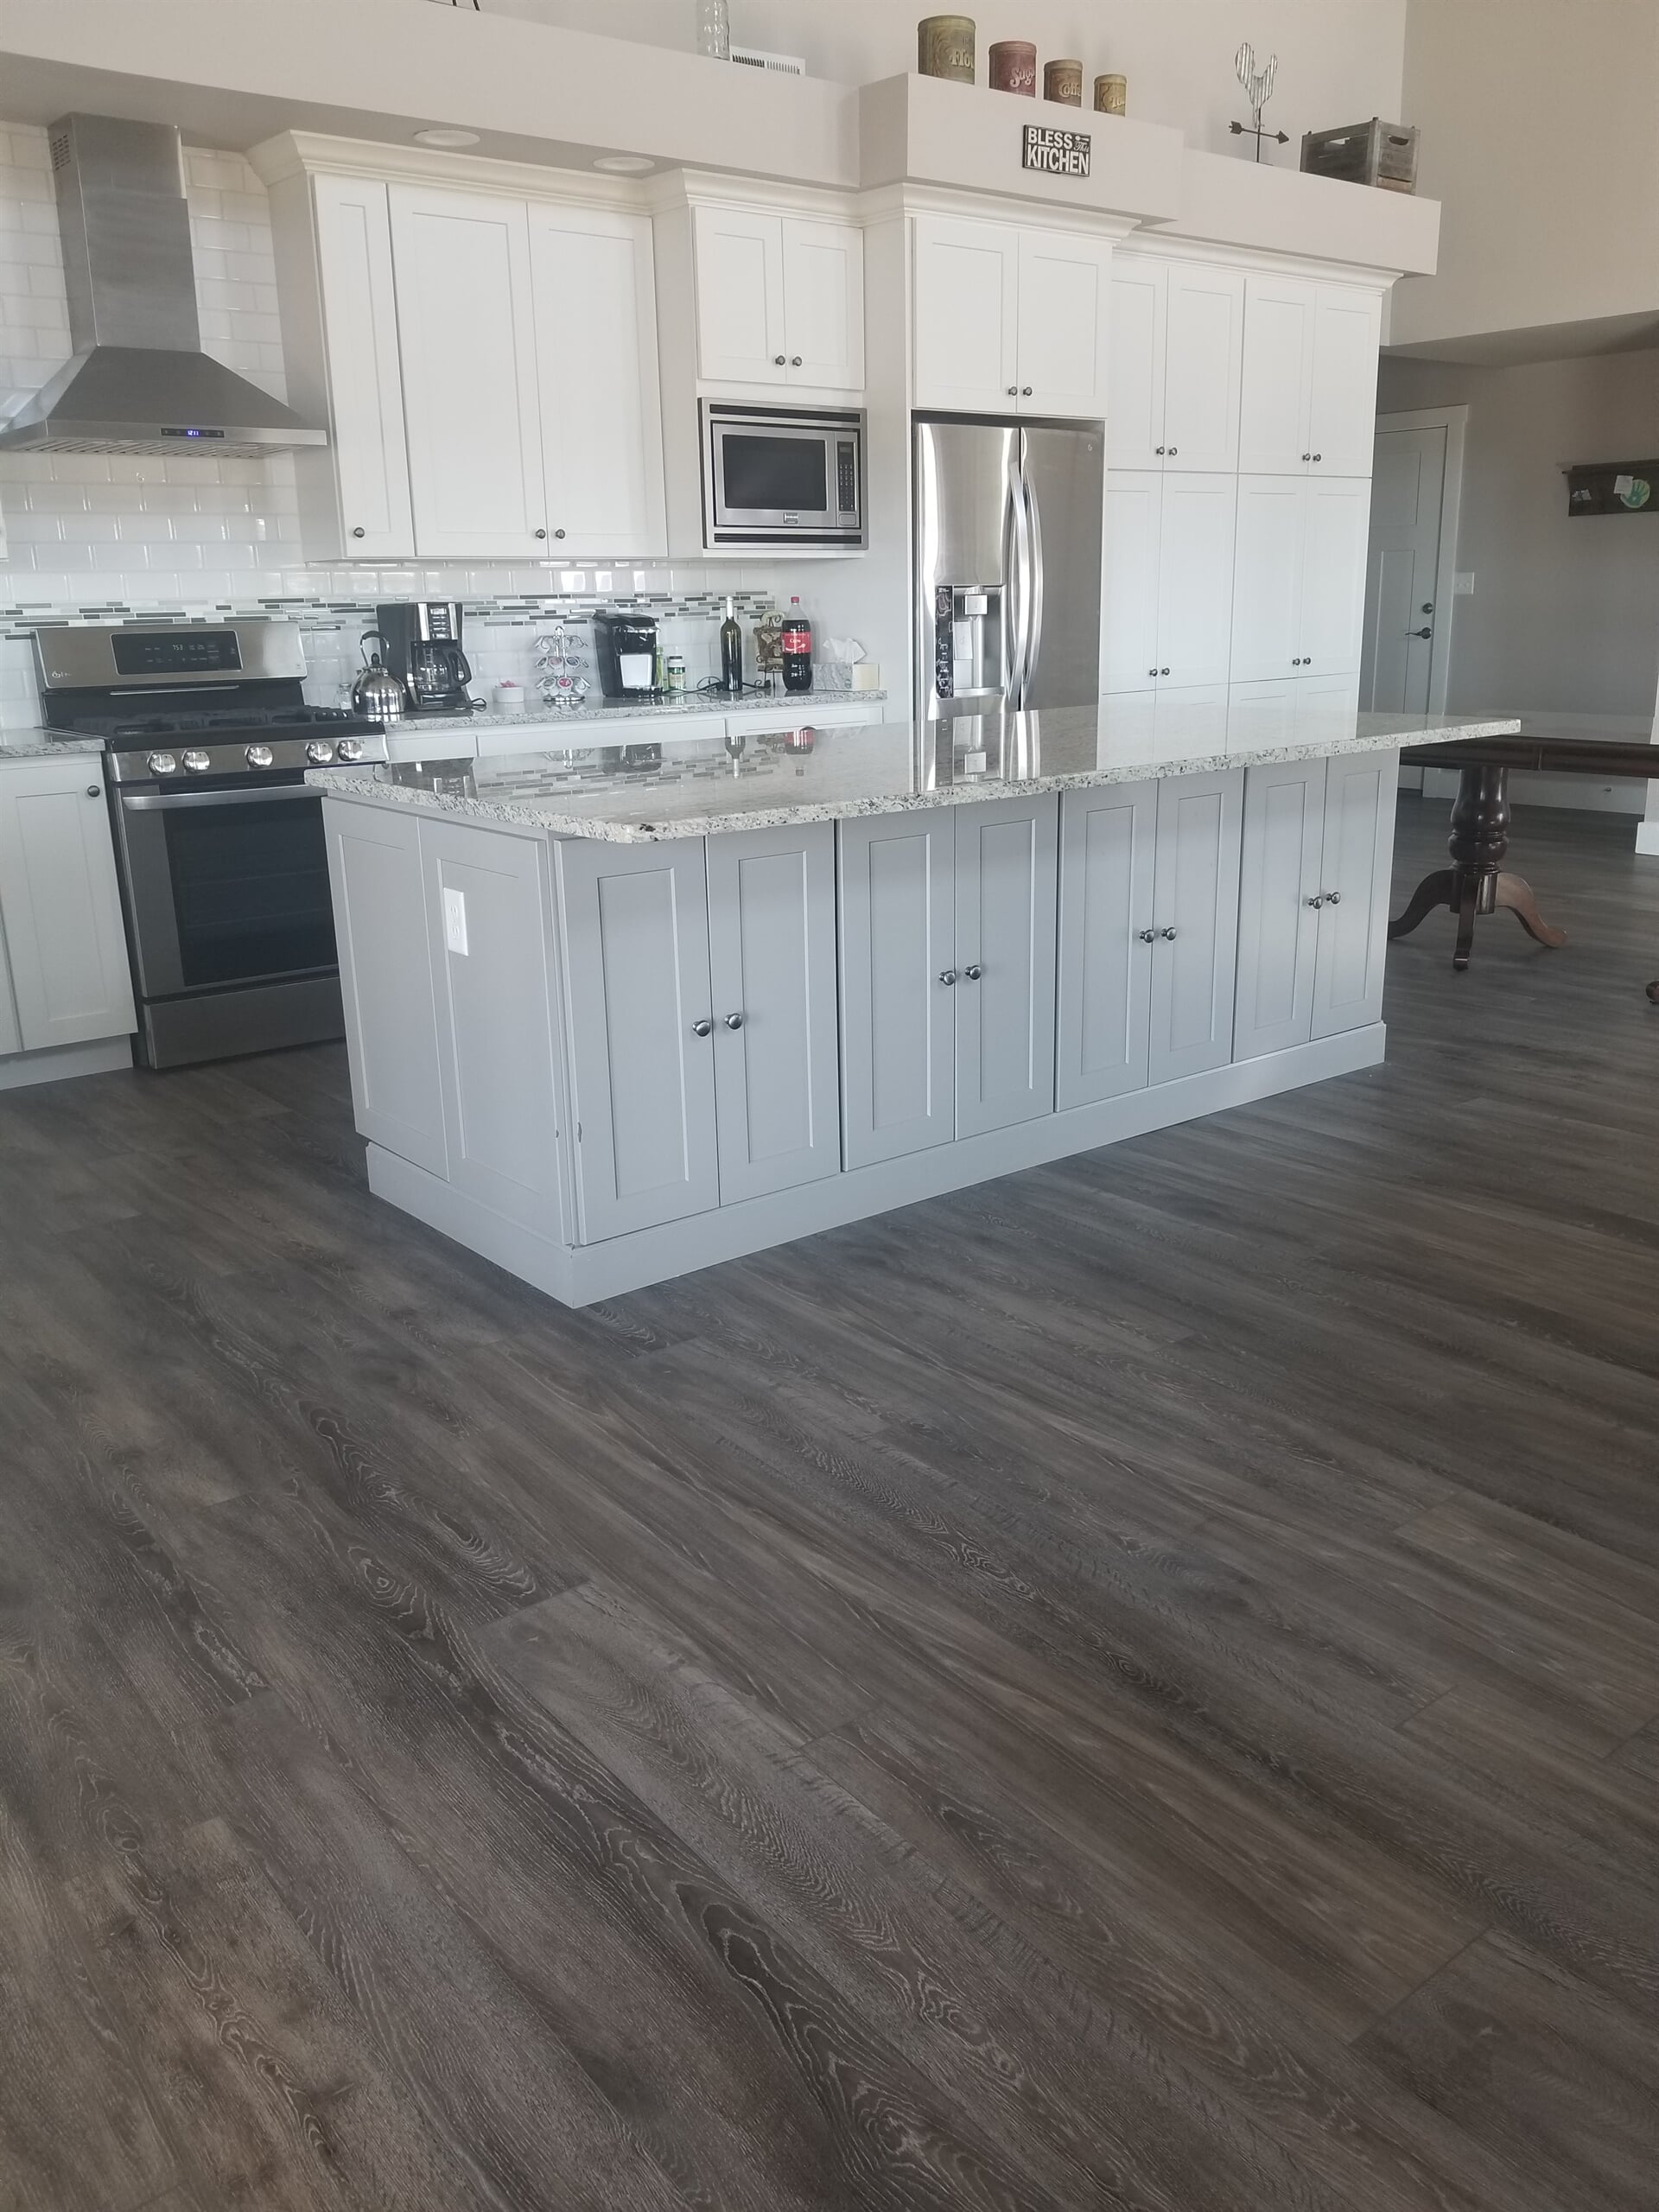 Beautiful kitchen renovation in Pueblo, CO from Mountain View Flooring